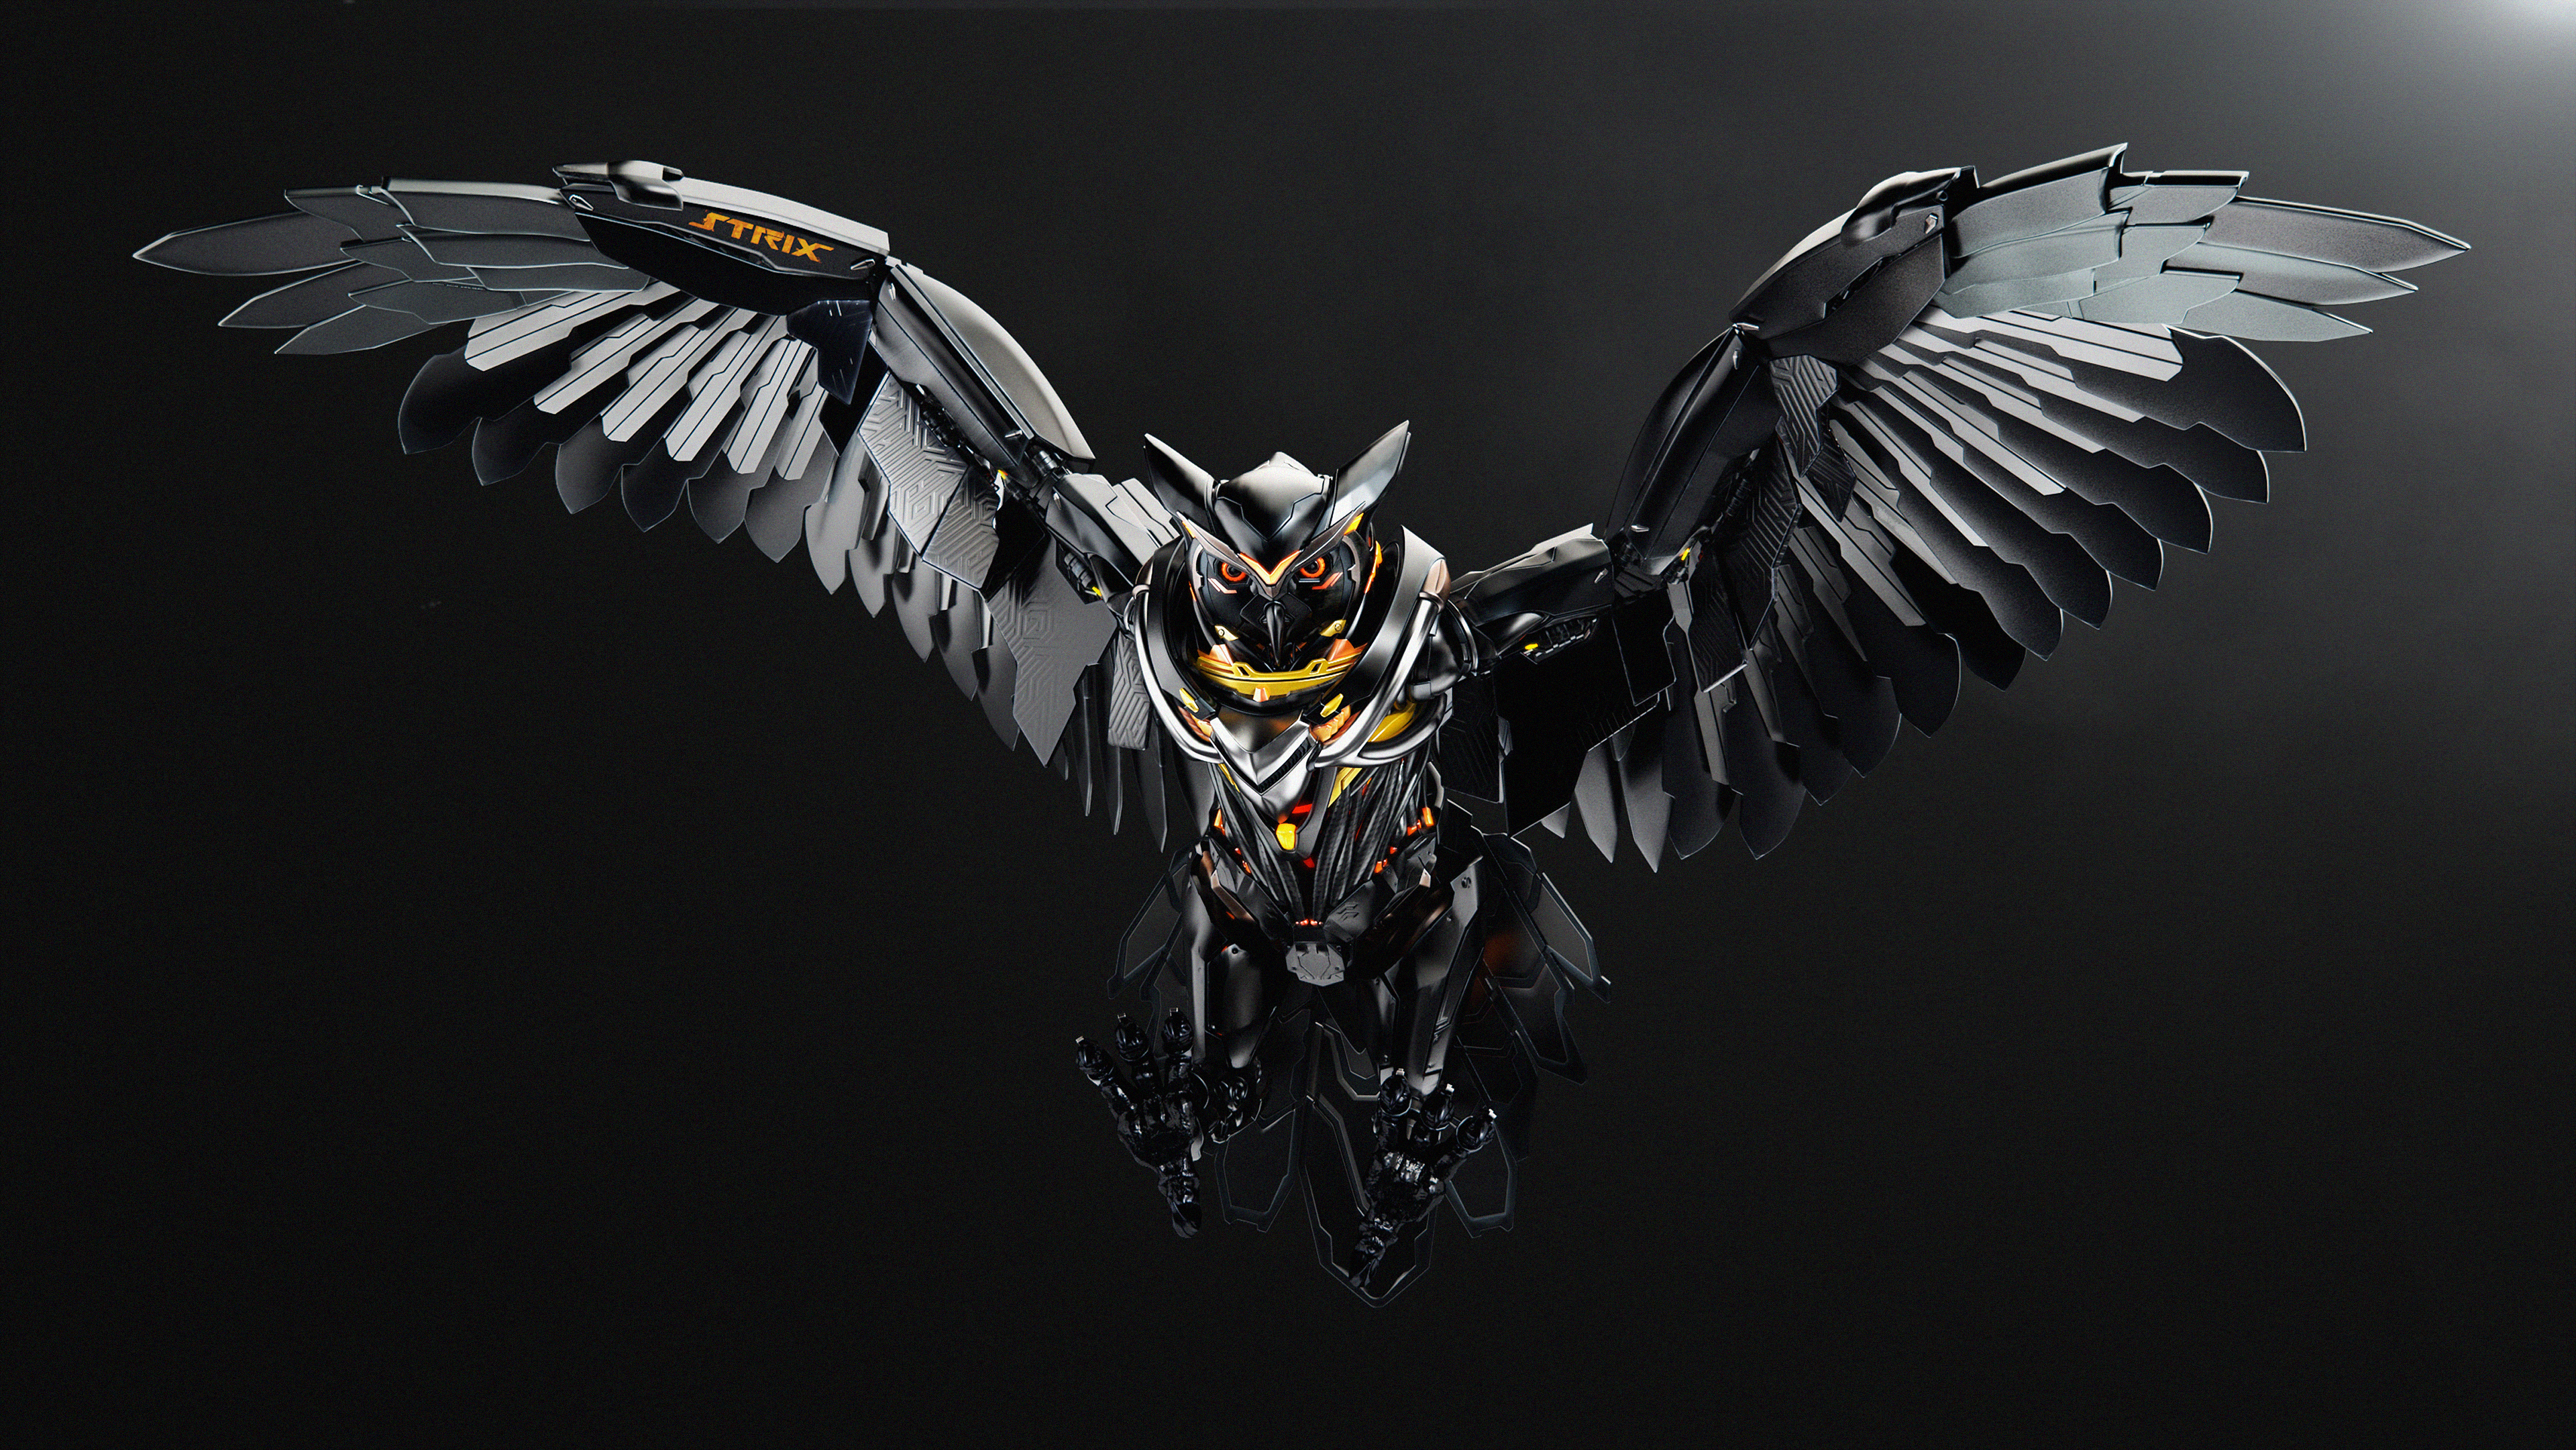 Asus Rog Strix Owl 4k Hd Computer 4k Wallpapers Images Backgrounds Photos And Pictures